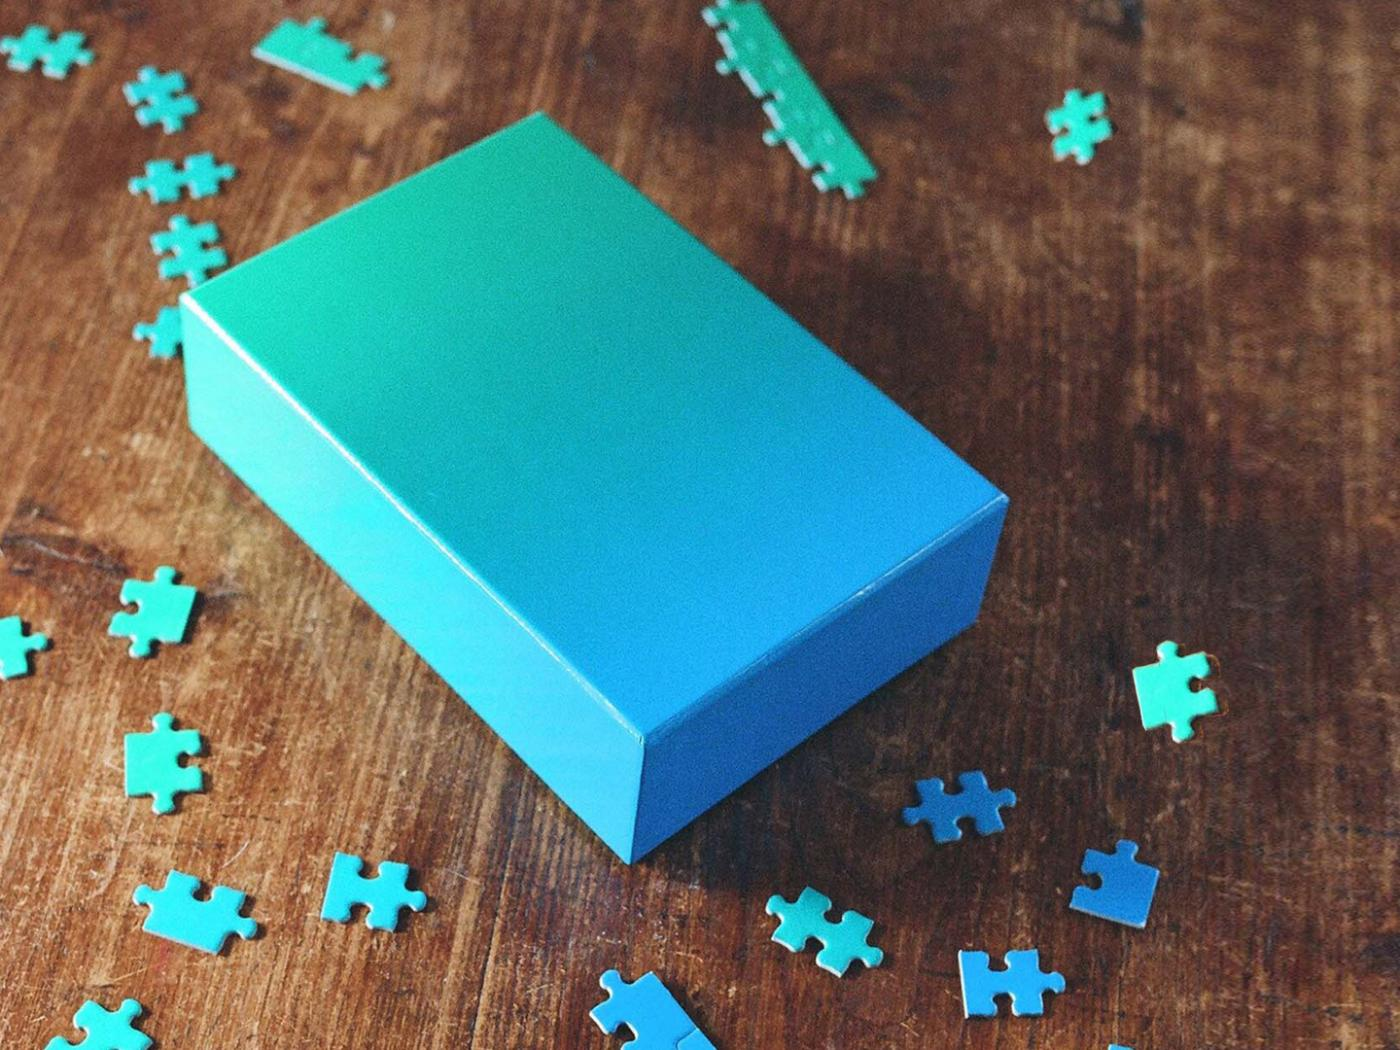 hd wallpaper with abstract art jigsaw puzzles and box hd